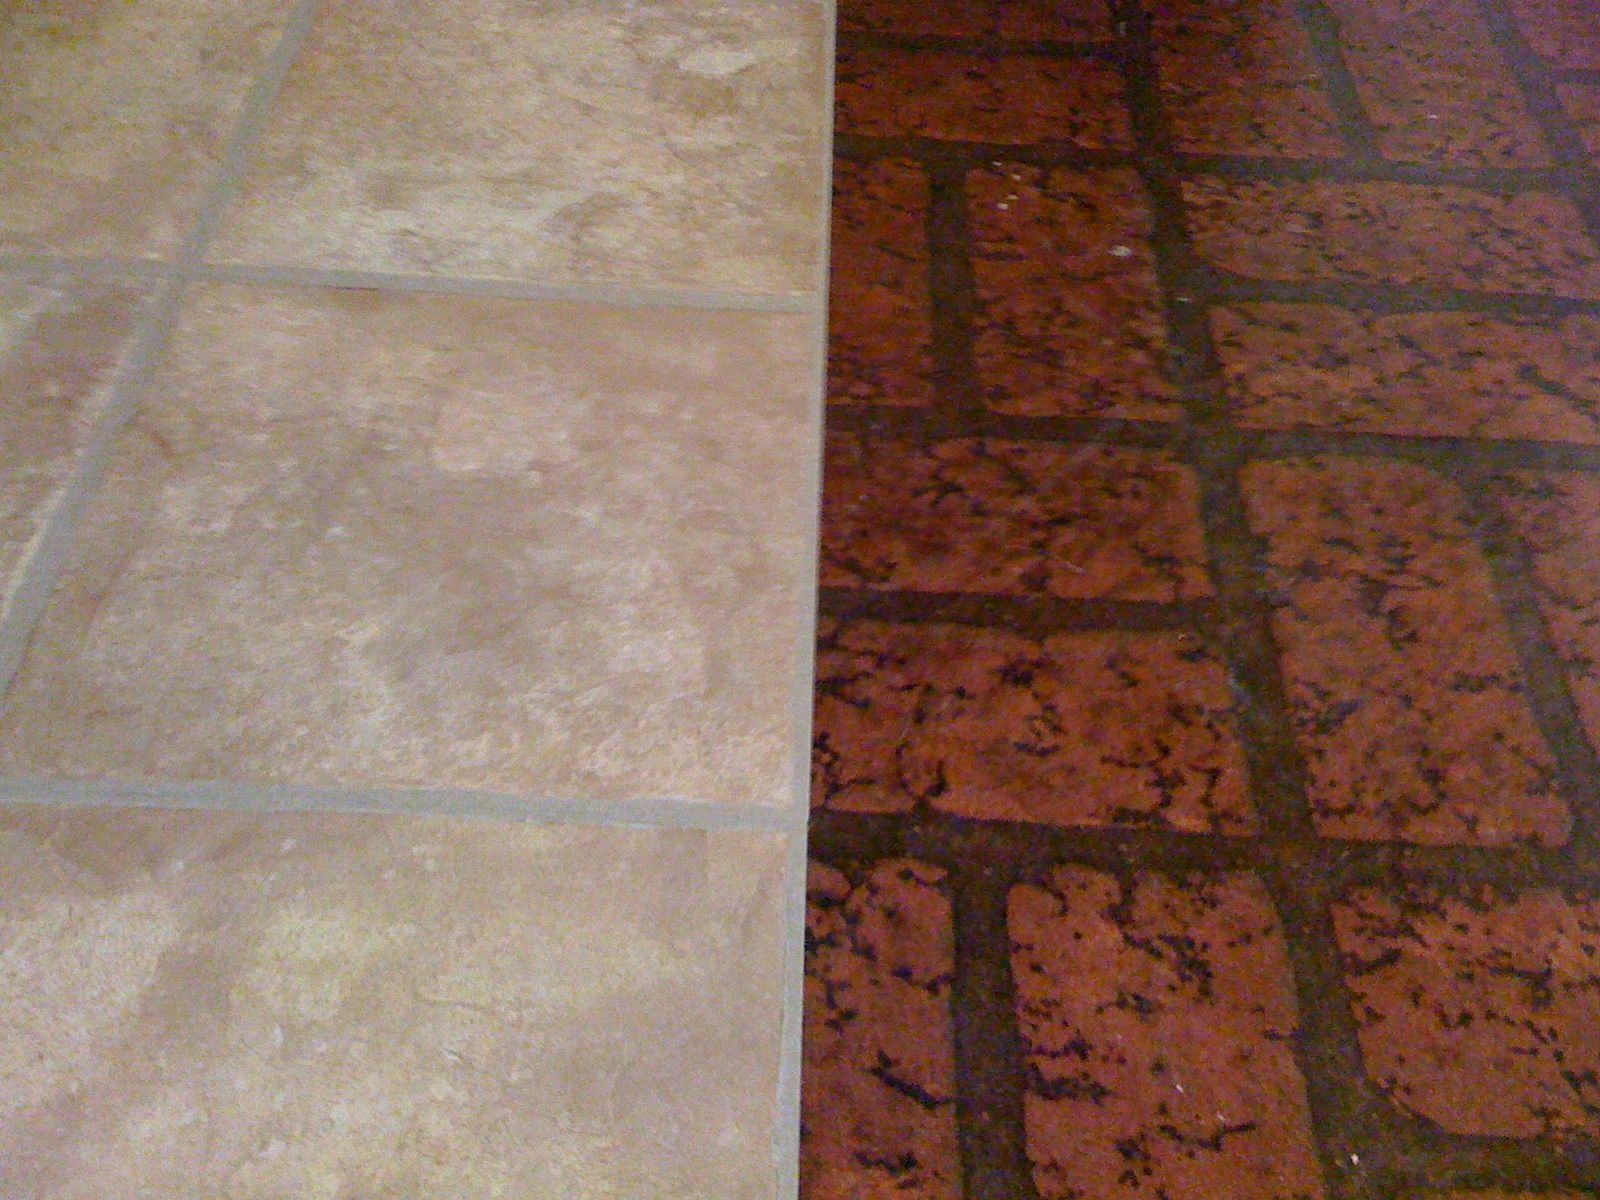 Brick Look Linoleum Flooring : Top linoleum flooring that looks like brick mm